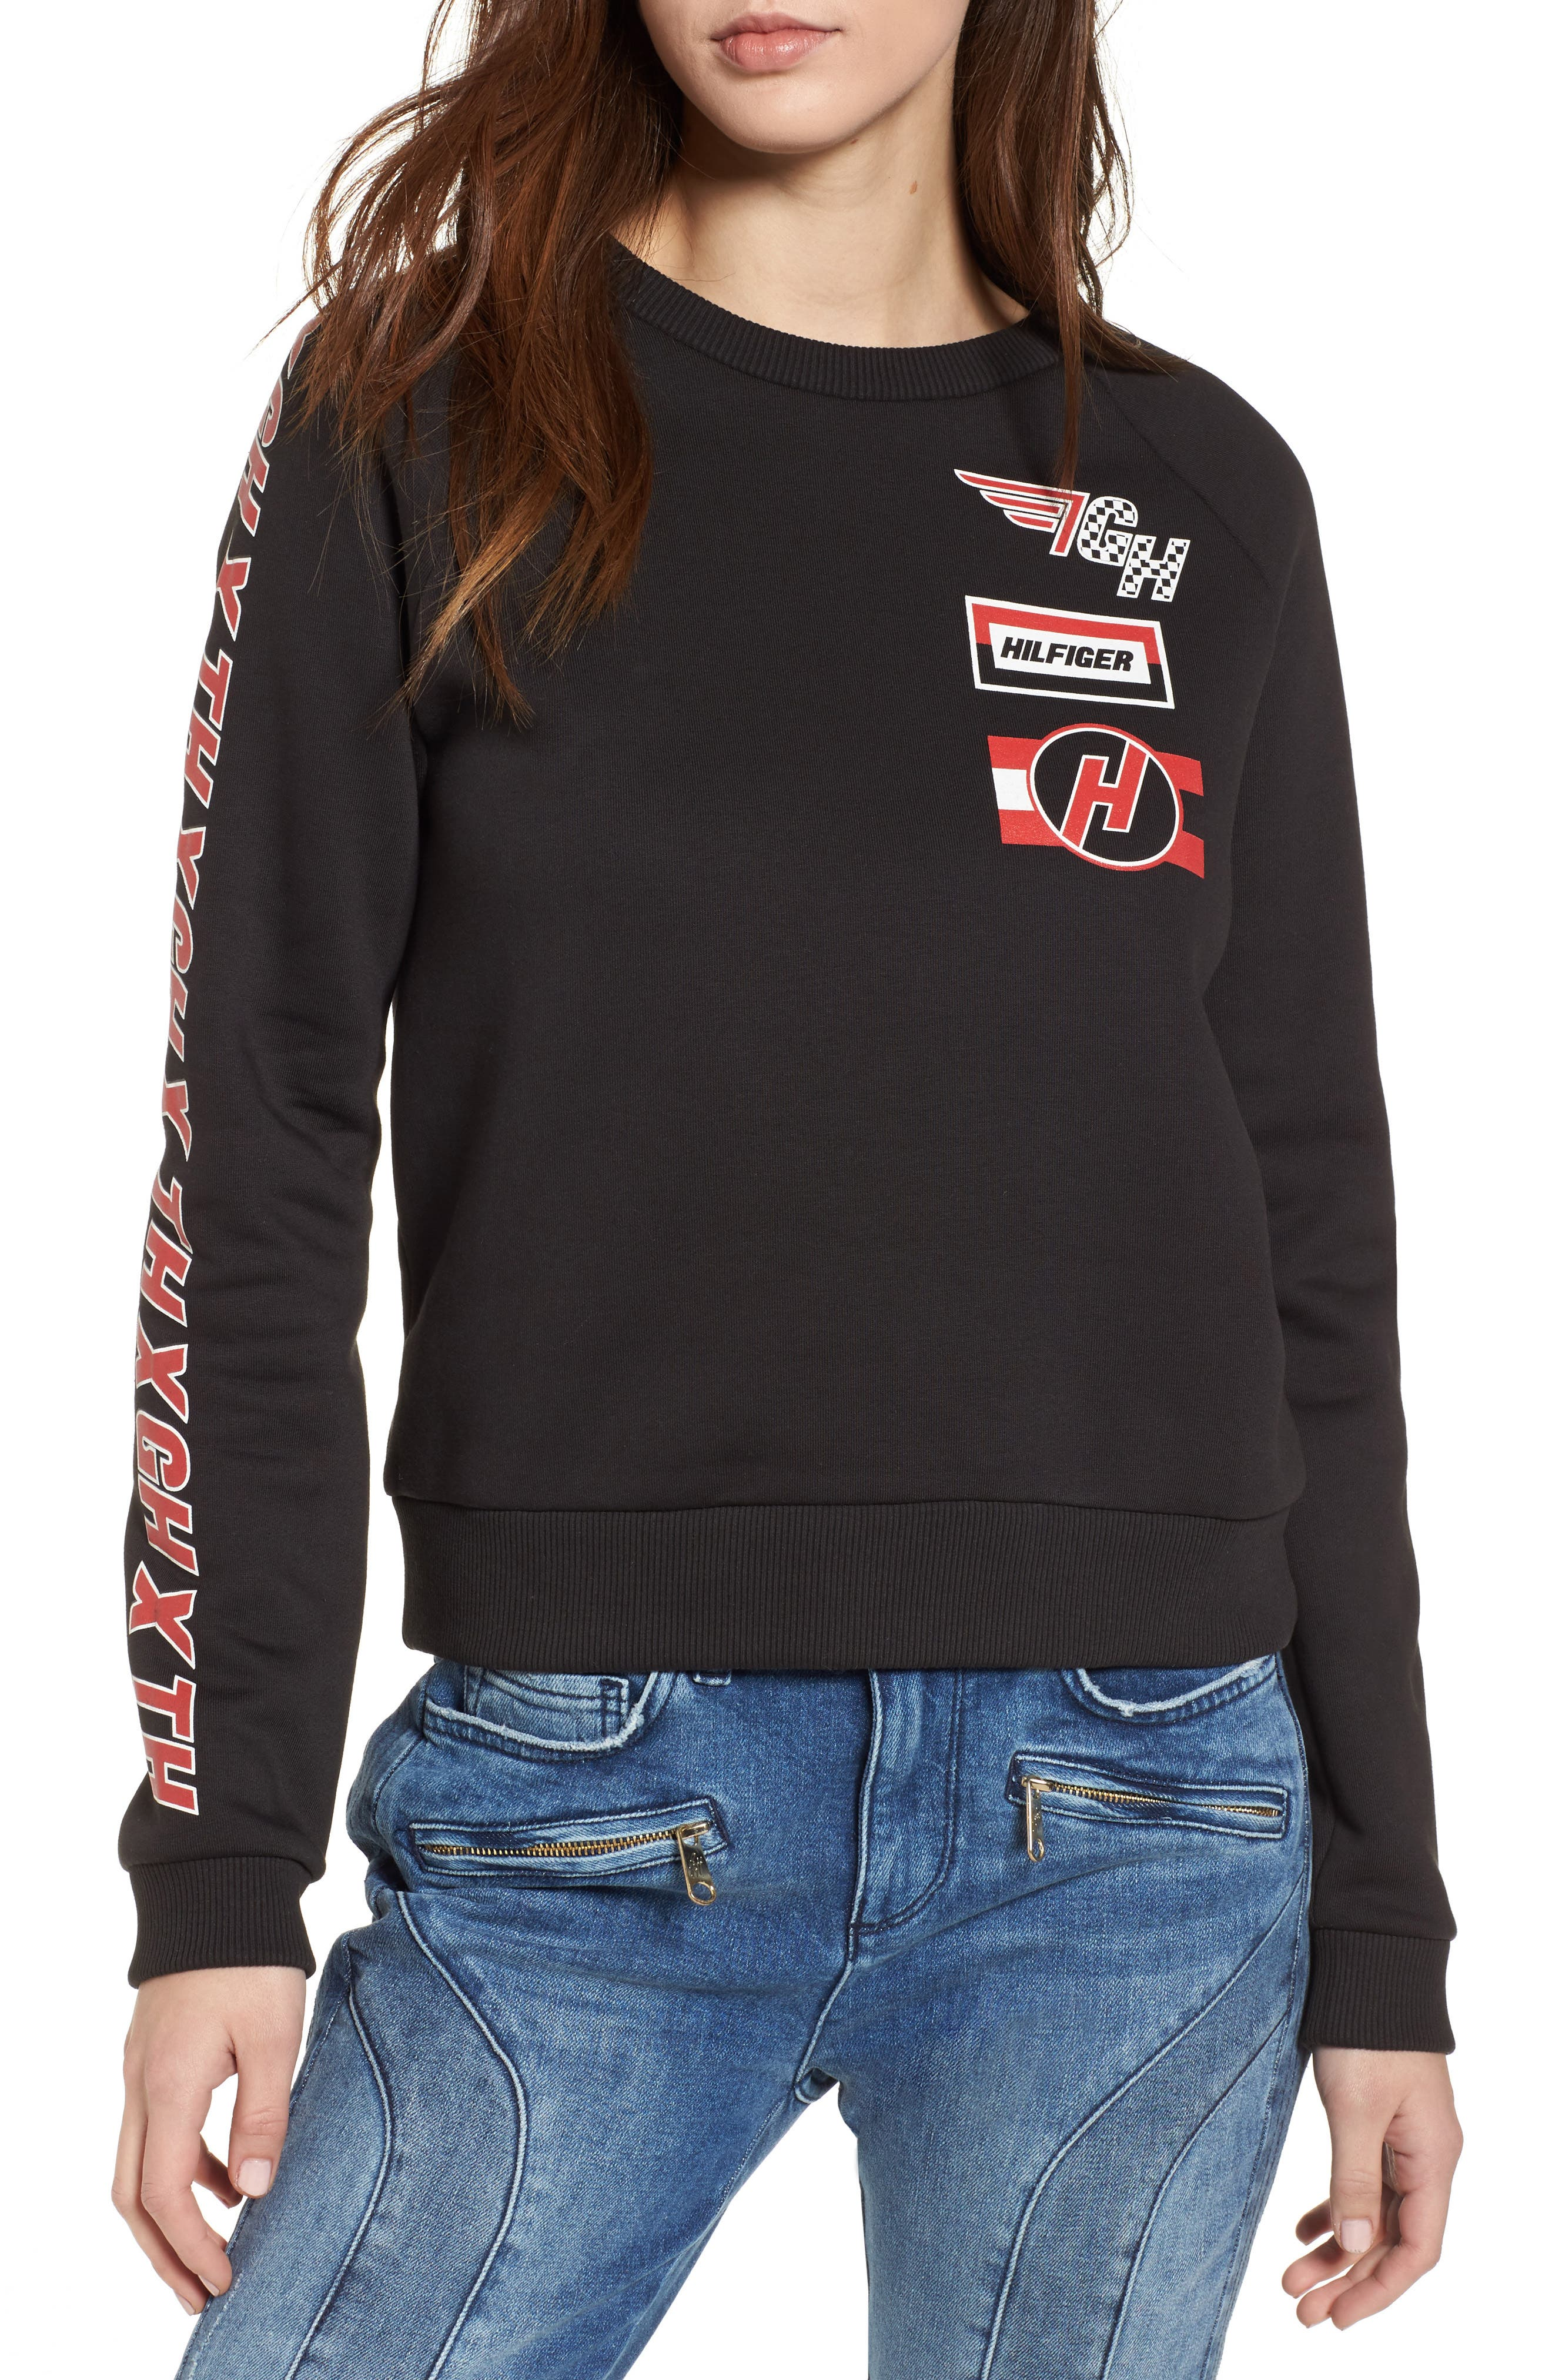 x Gigi Hadid Team Sweatshirt,                             Main thumbnail 1, color,                             004